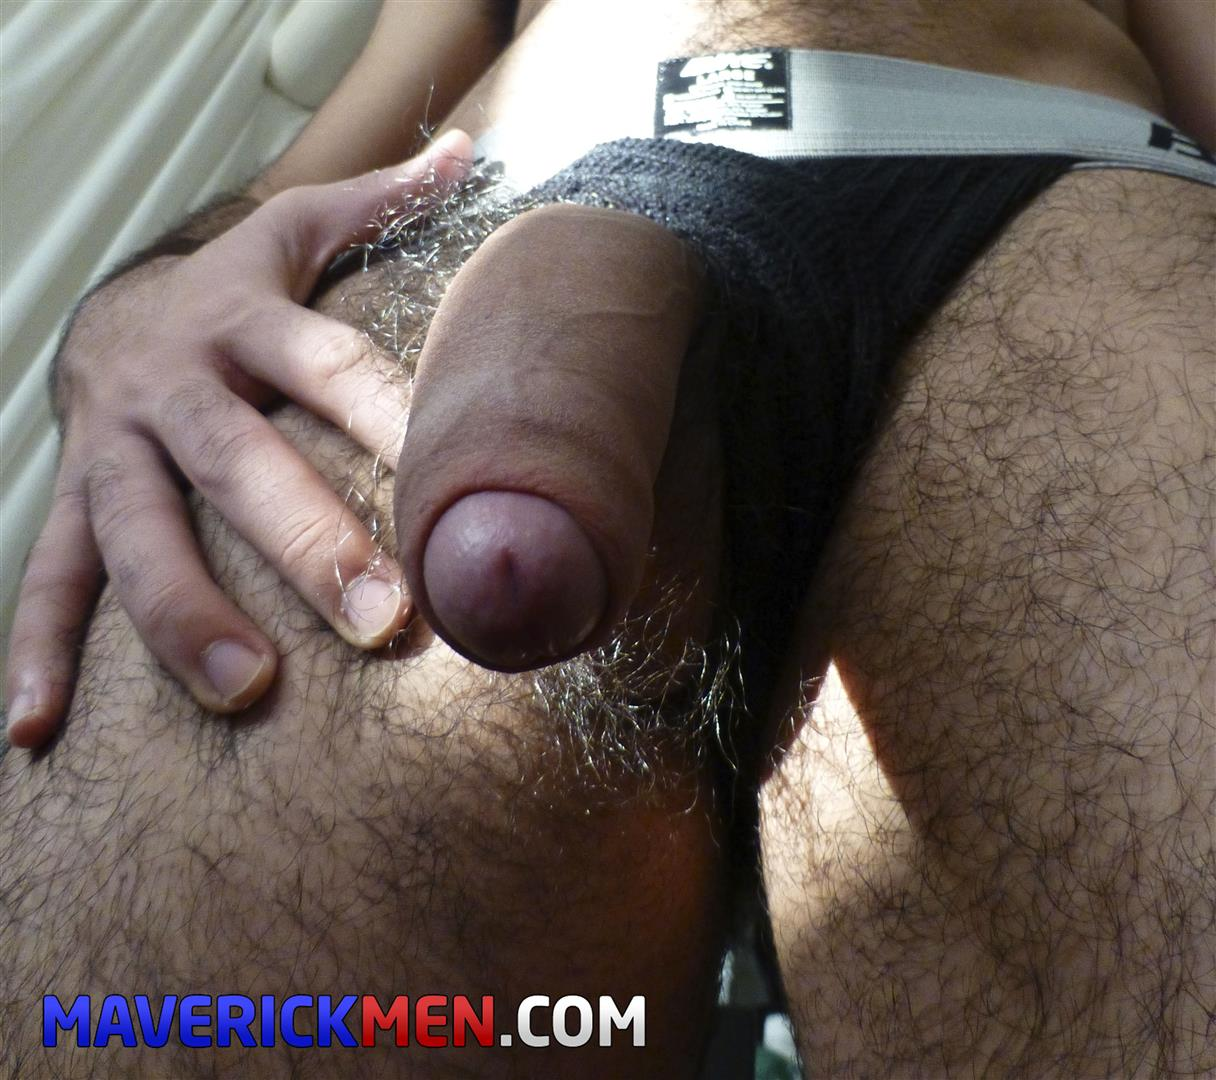 Maverick-Men-Little-Wolf-Hairy-Ass-Guy-With-A-Big-Uncut-Cock-Bareback-Amateur-Gay-Porn-01 Breeding A Young Guy With A Hairy Ass And A Big Uncut Cock